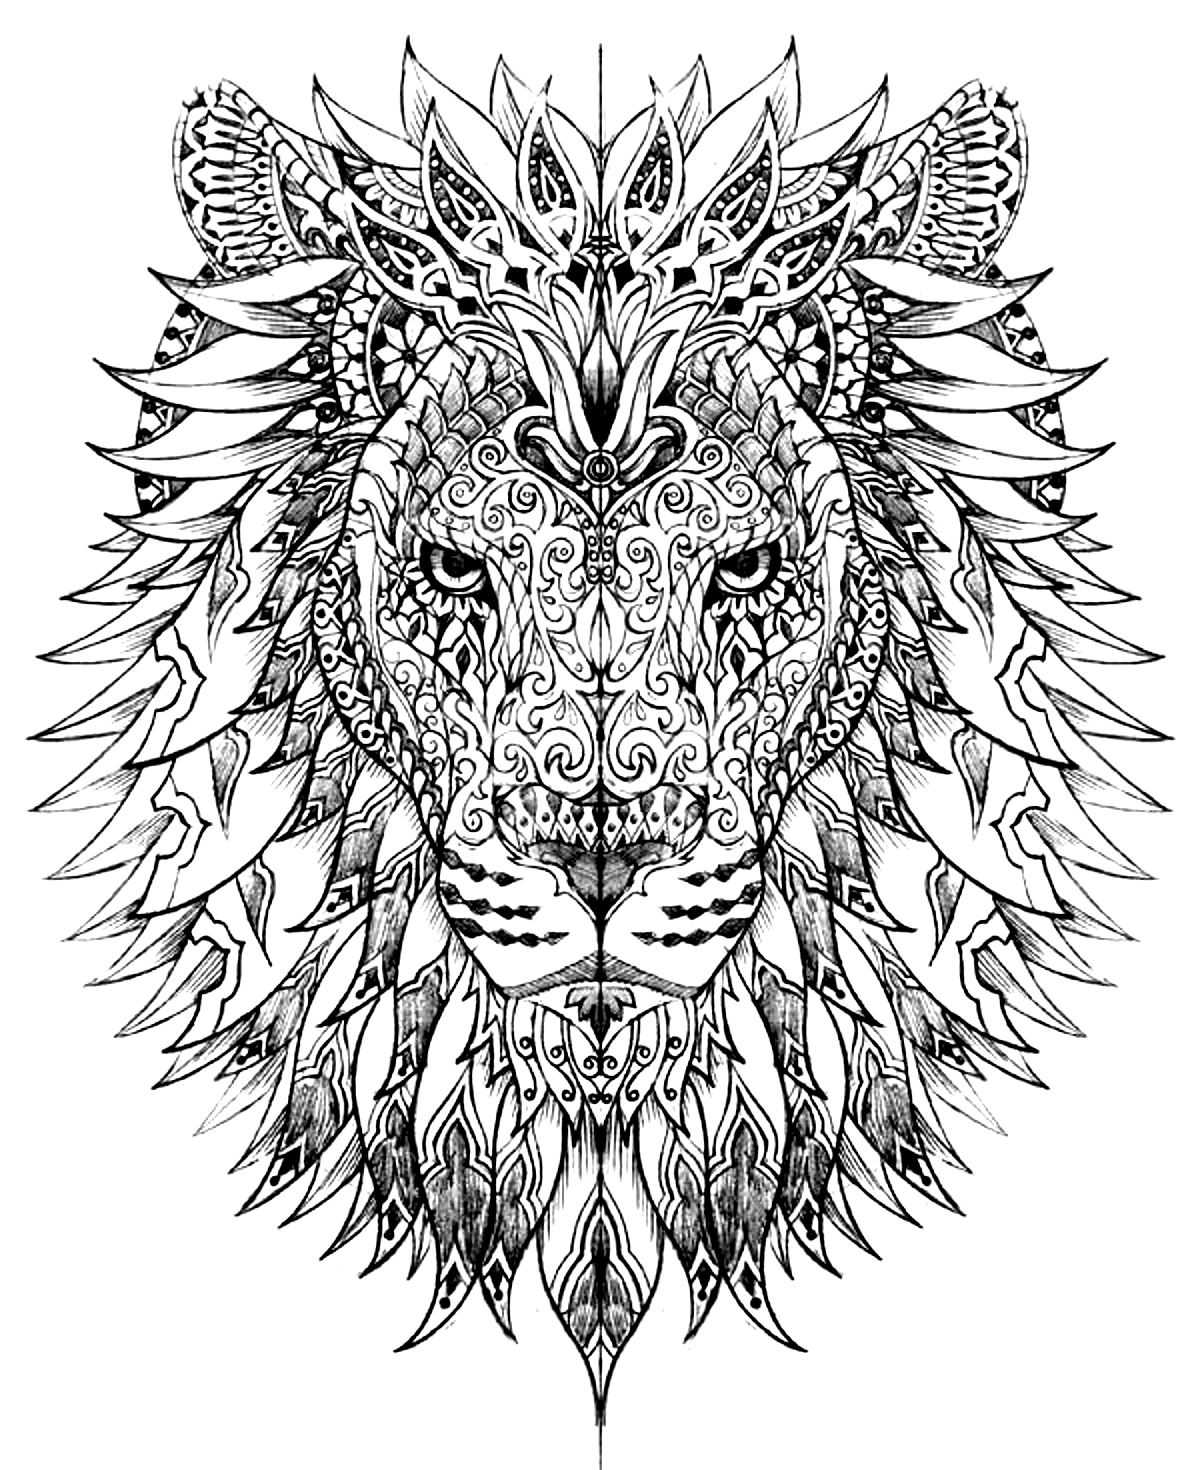 Lion head - Lions Adult Coloring PagesLion Head Coloring Pages For Adults